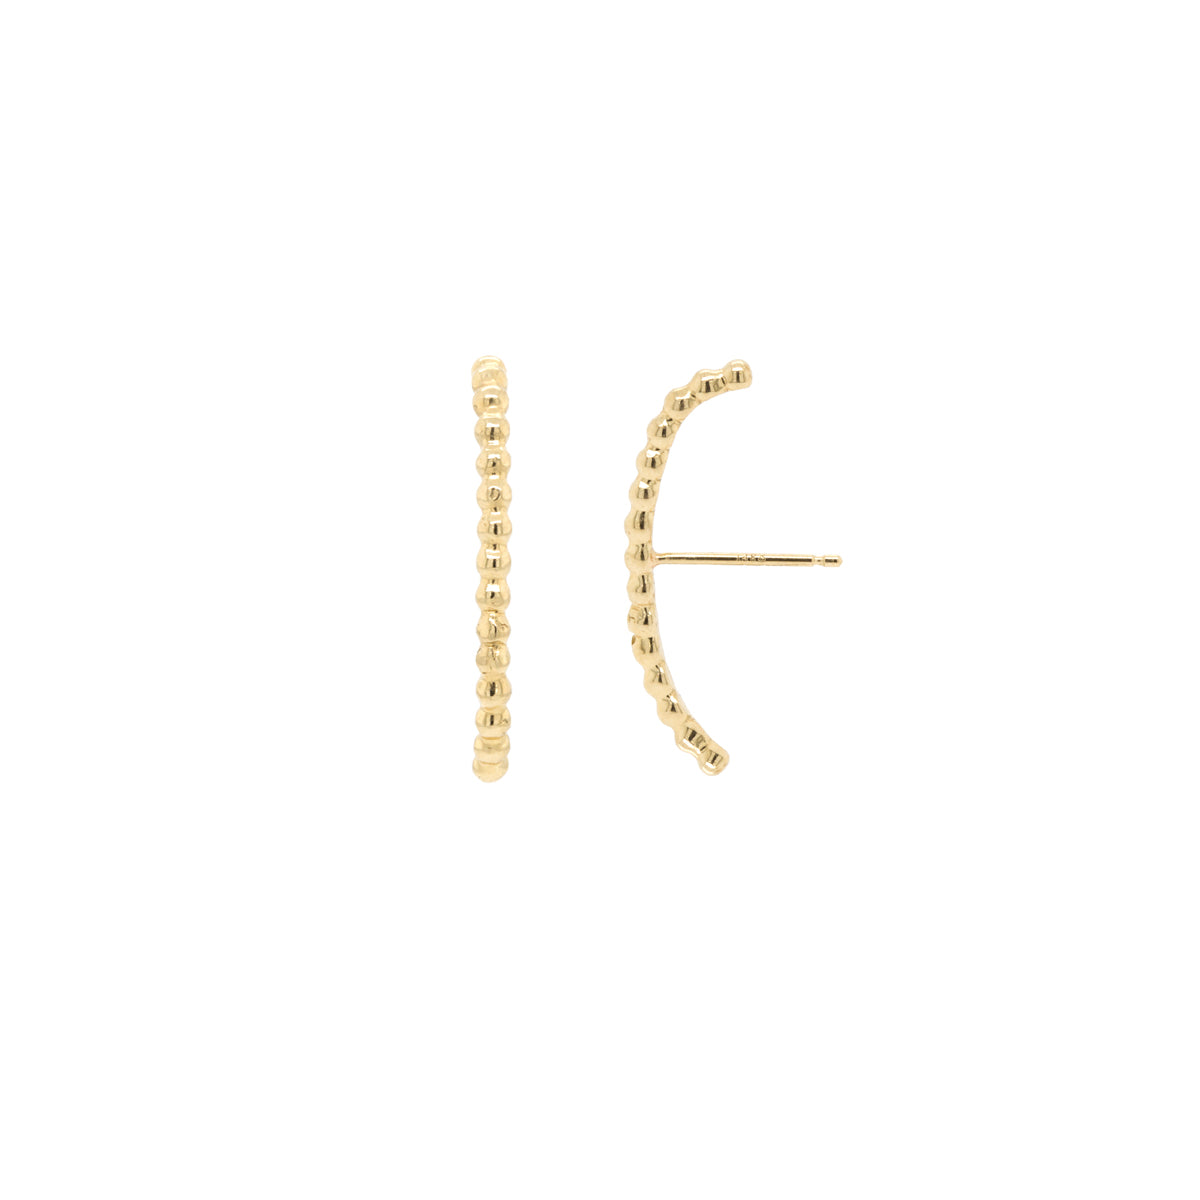 14k gold bead curved bar cuff stud